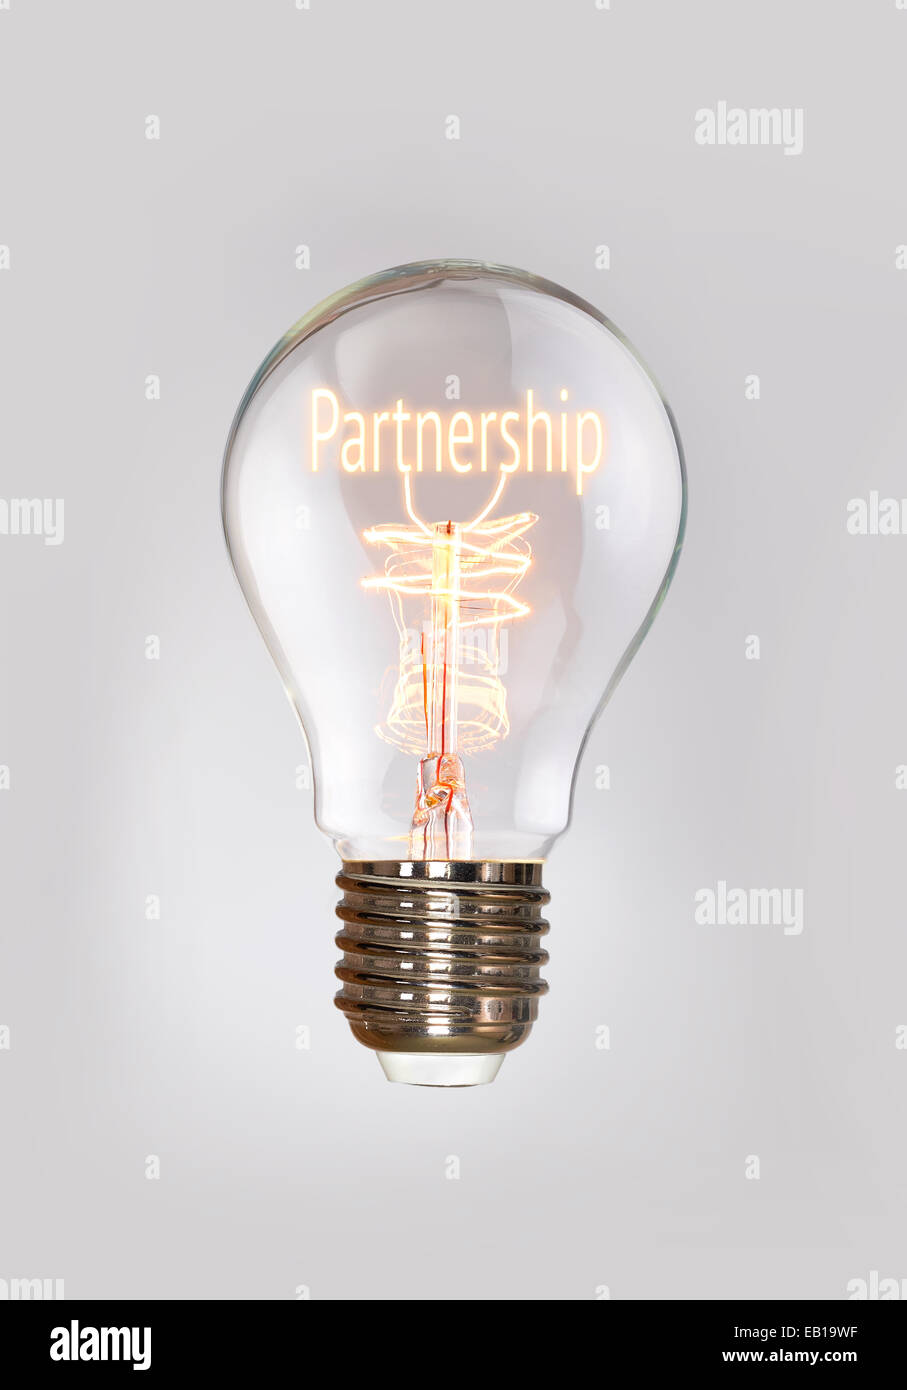 Partnership concept in a filament lightbulb. - Stock Image